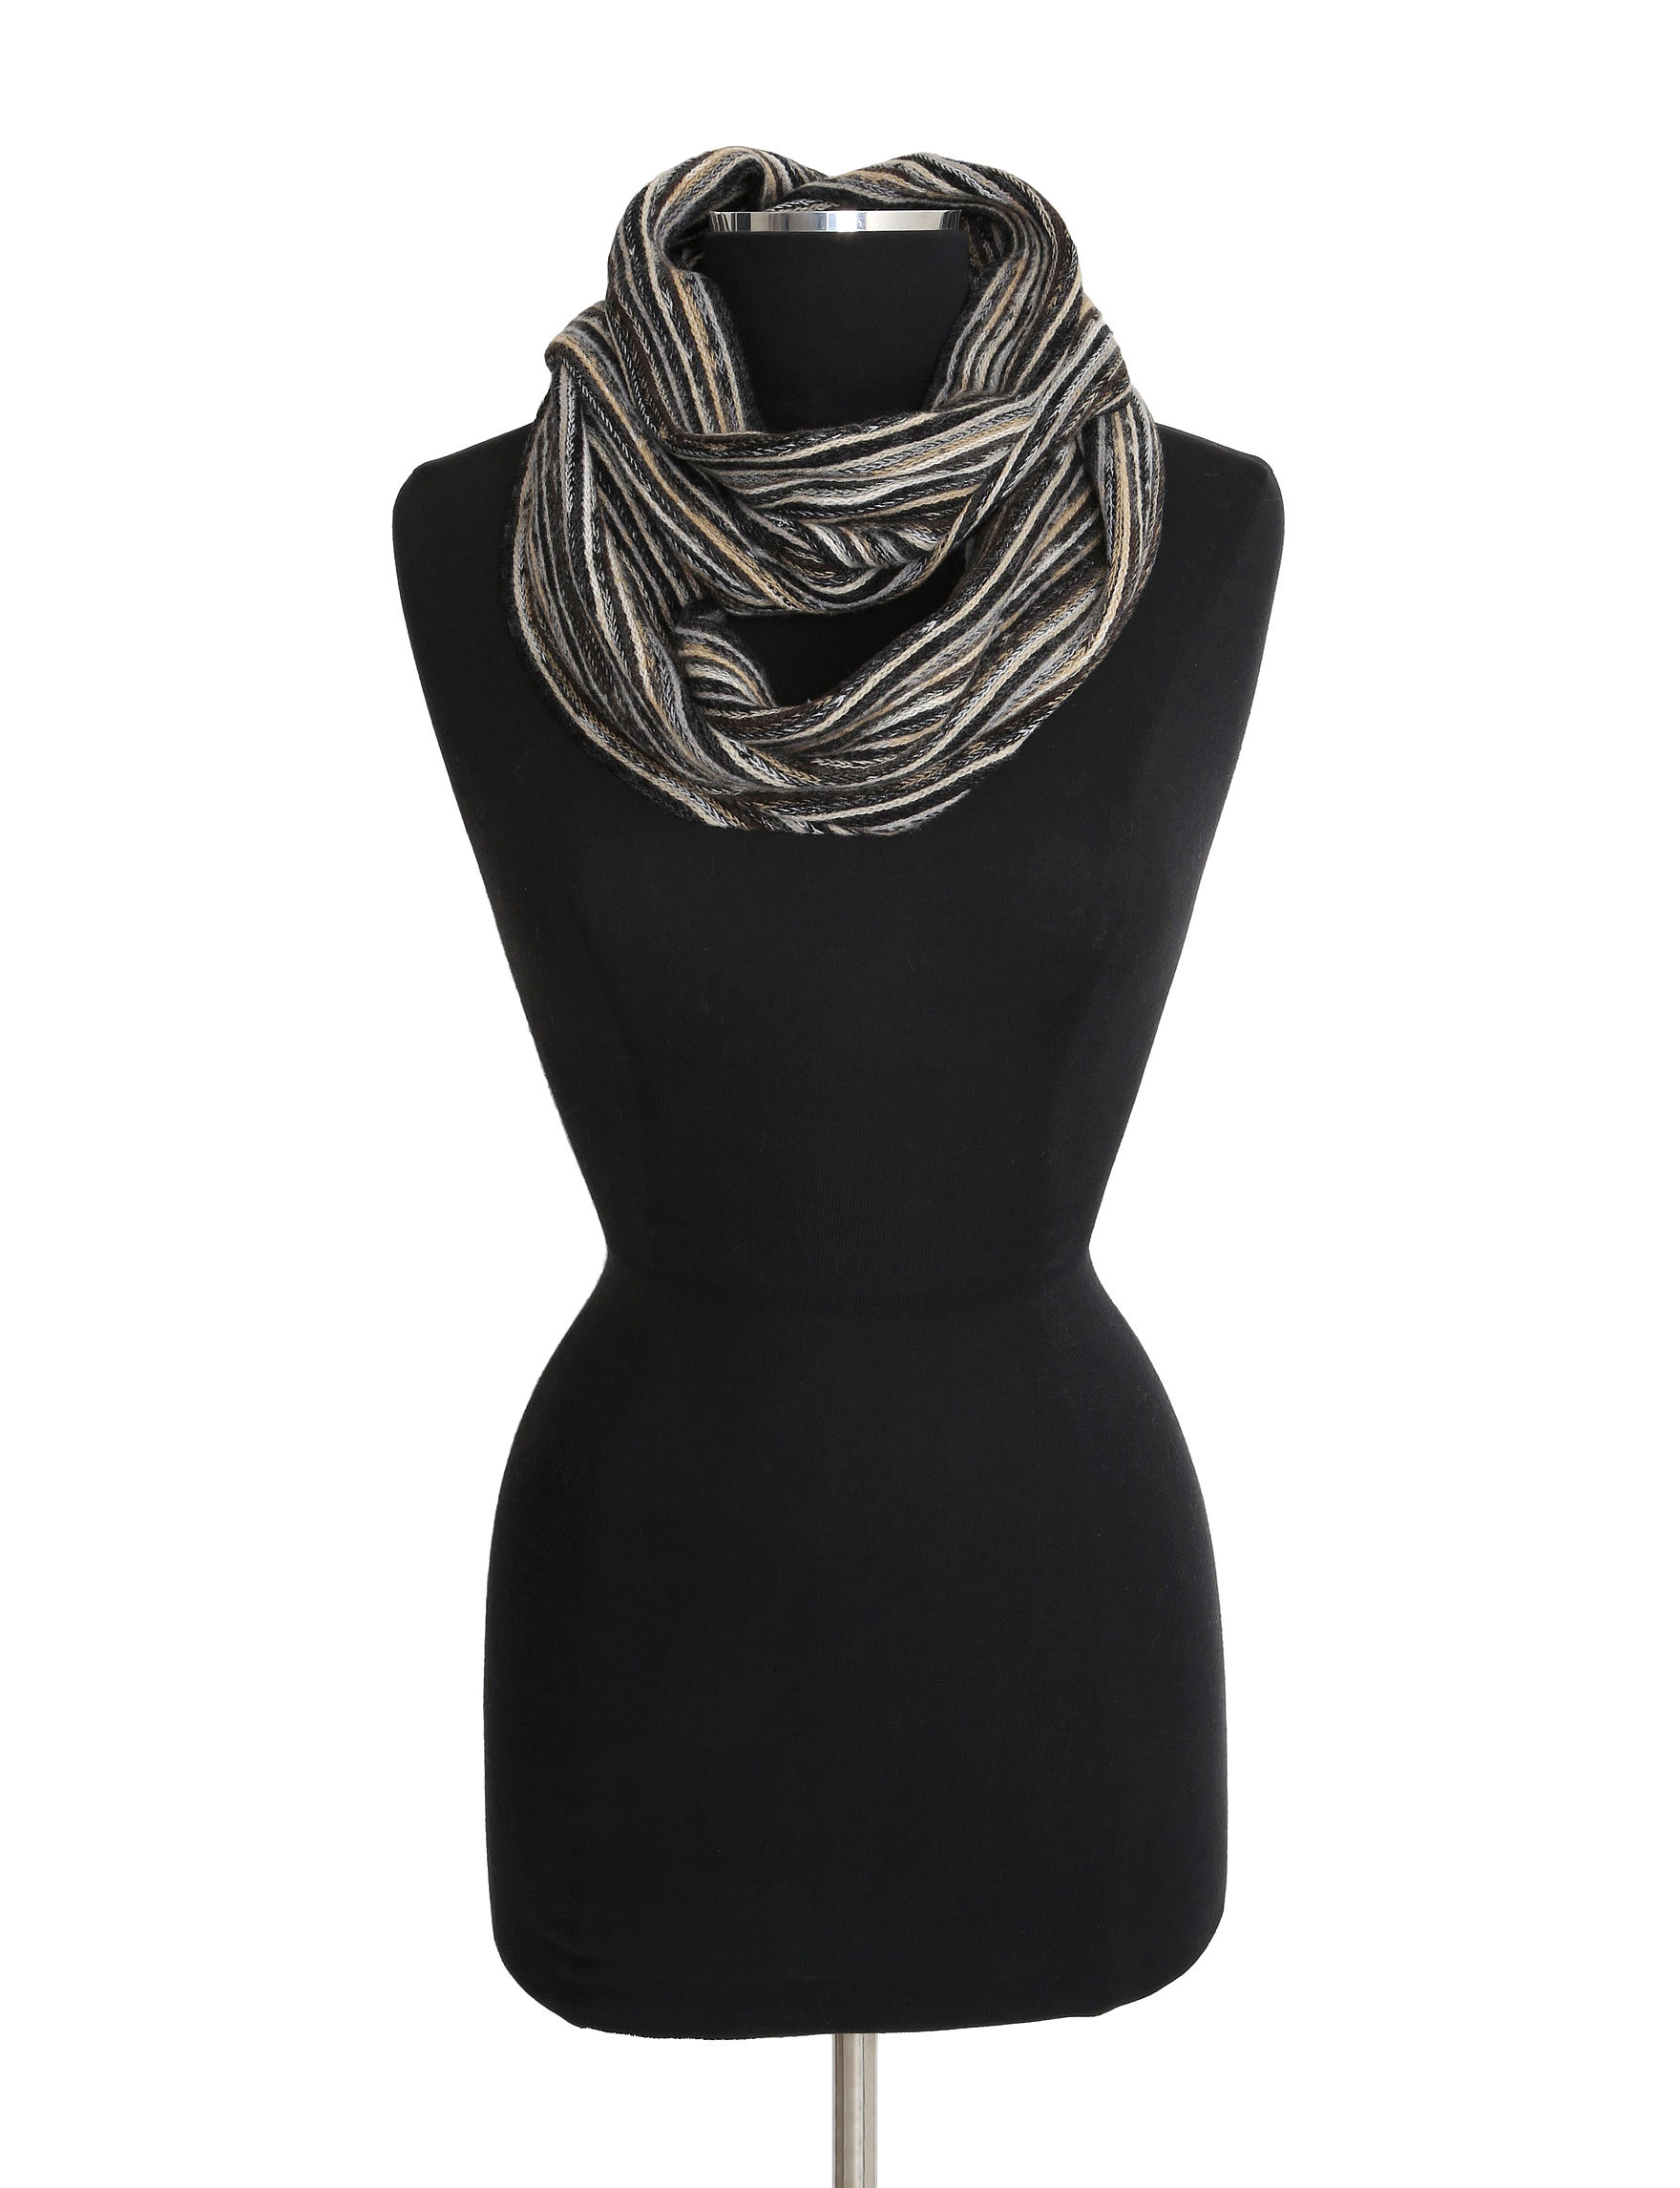 Cejon Neutral Scarves & Wraps Infinity & Loops